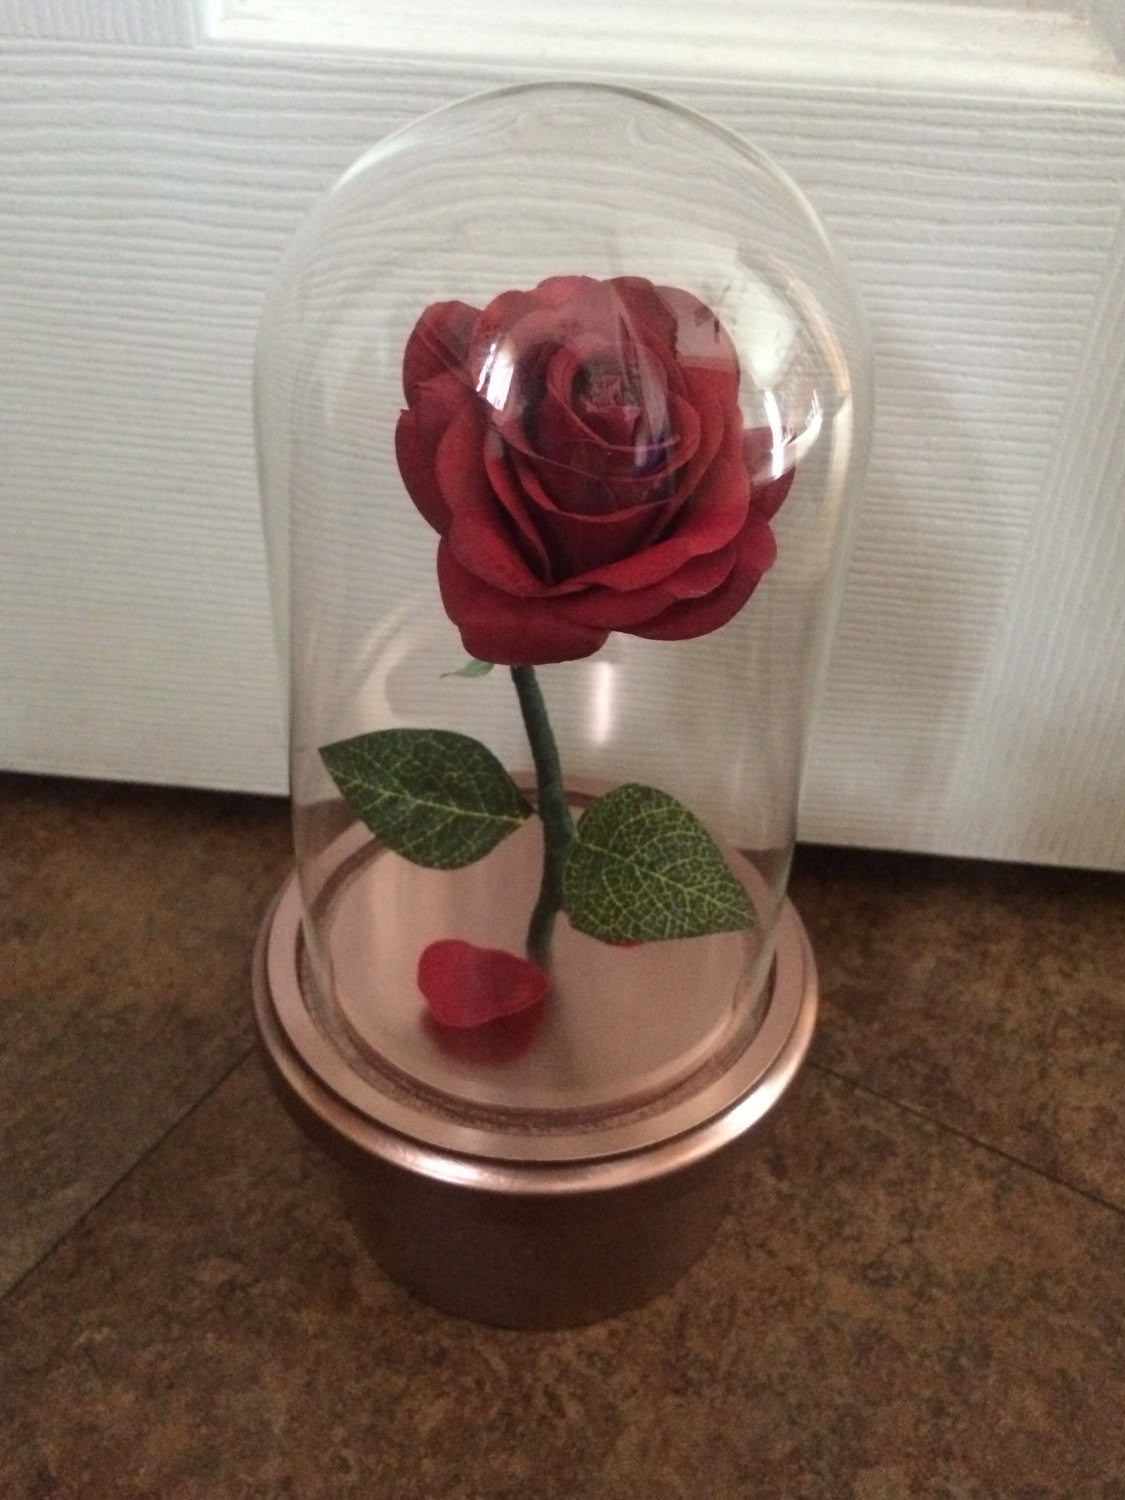 Stunning Beauty and the Beast swivel top ring box proposal prop Valentine's Day gift